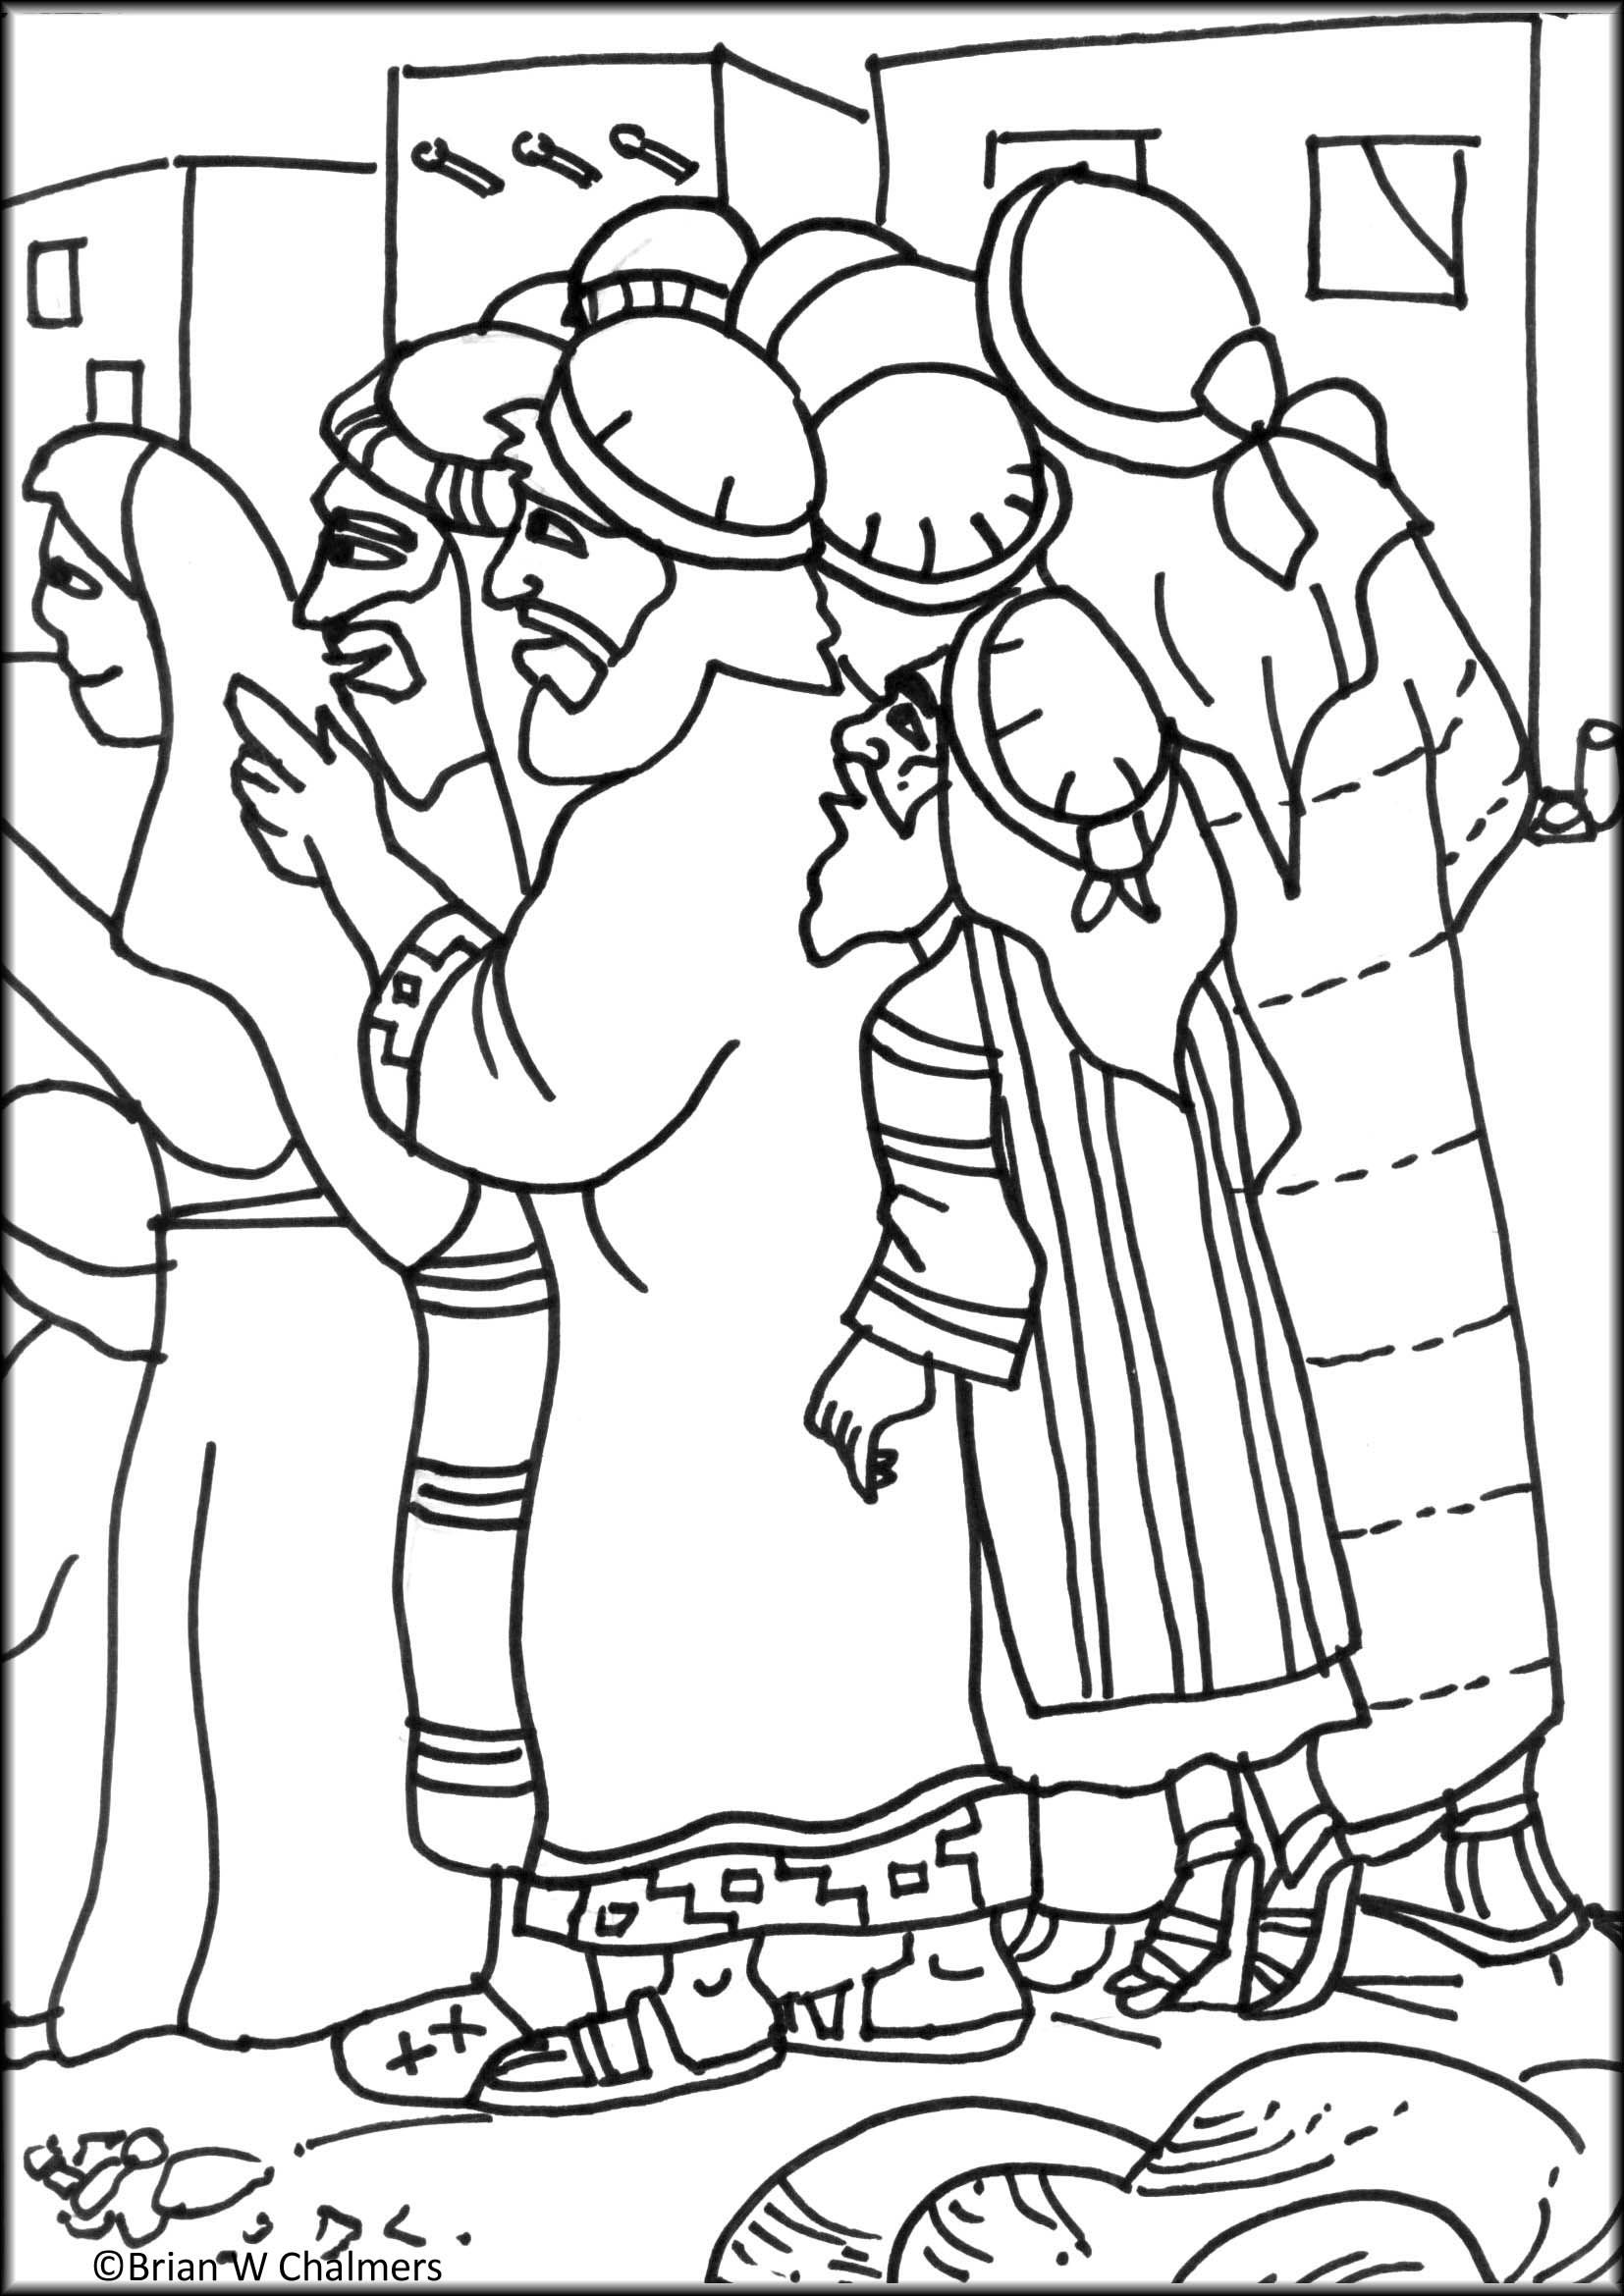 Download Or Print This Amazing Coloring Page Zacchaeus Flip Chart